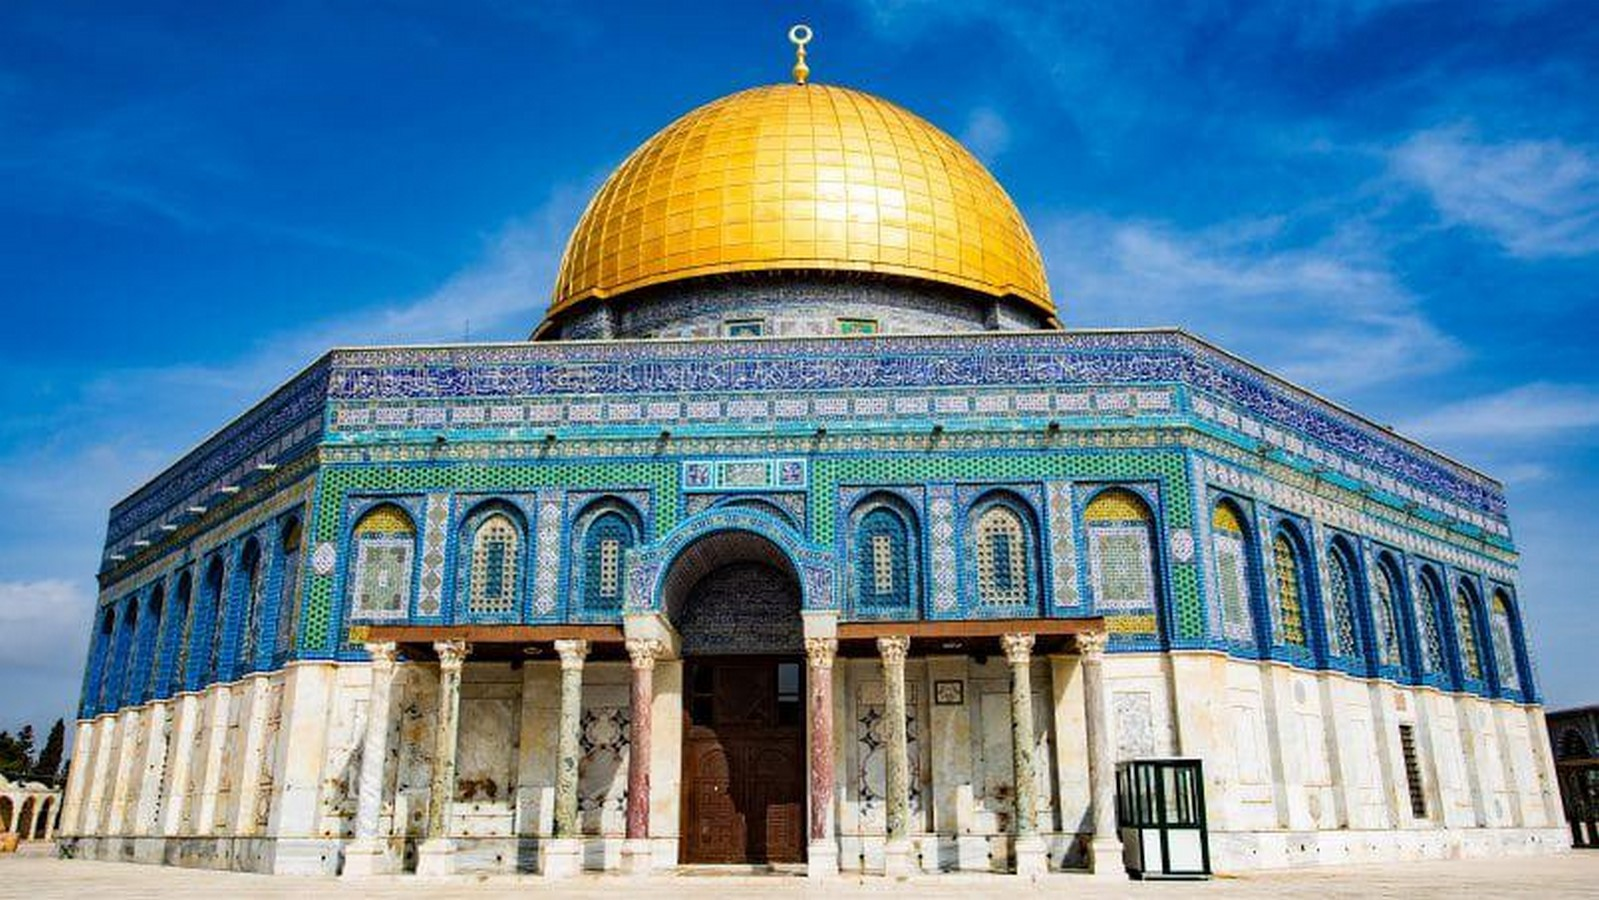 Dome of the rock - Sheet3